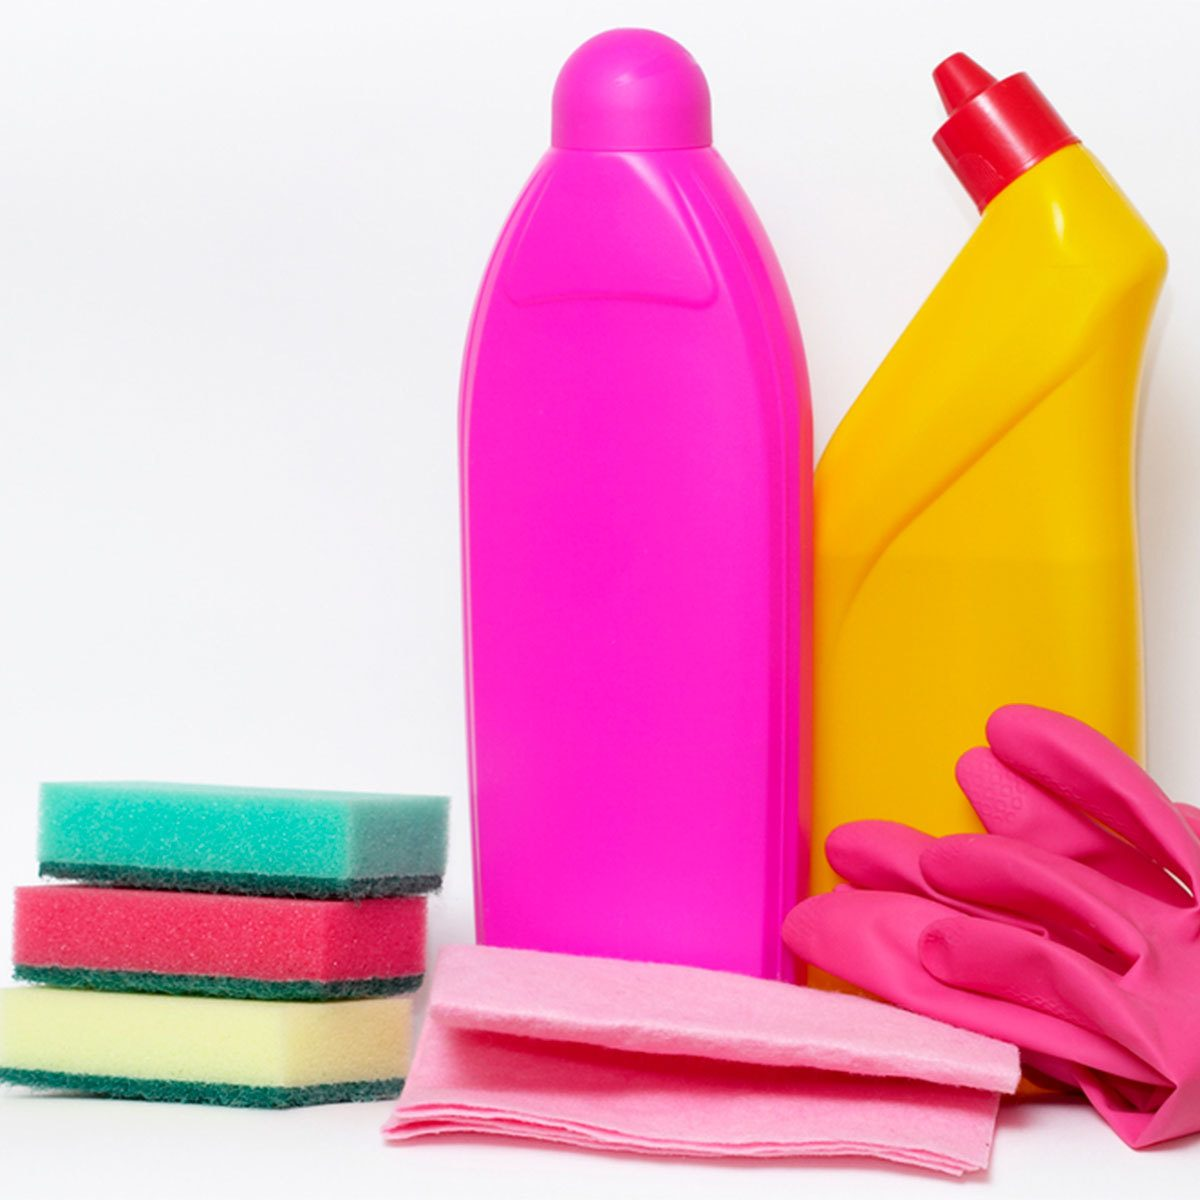 empty cleaning products and bottles